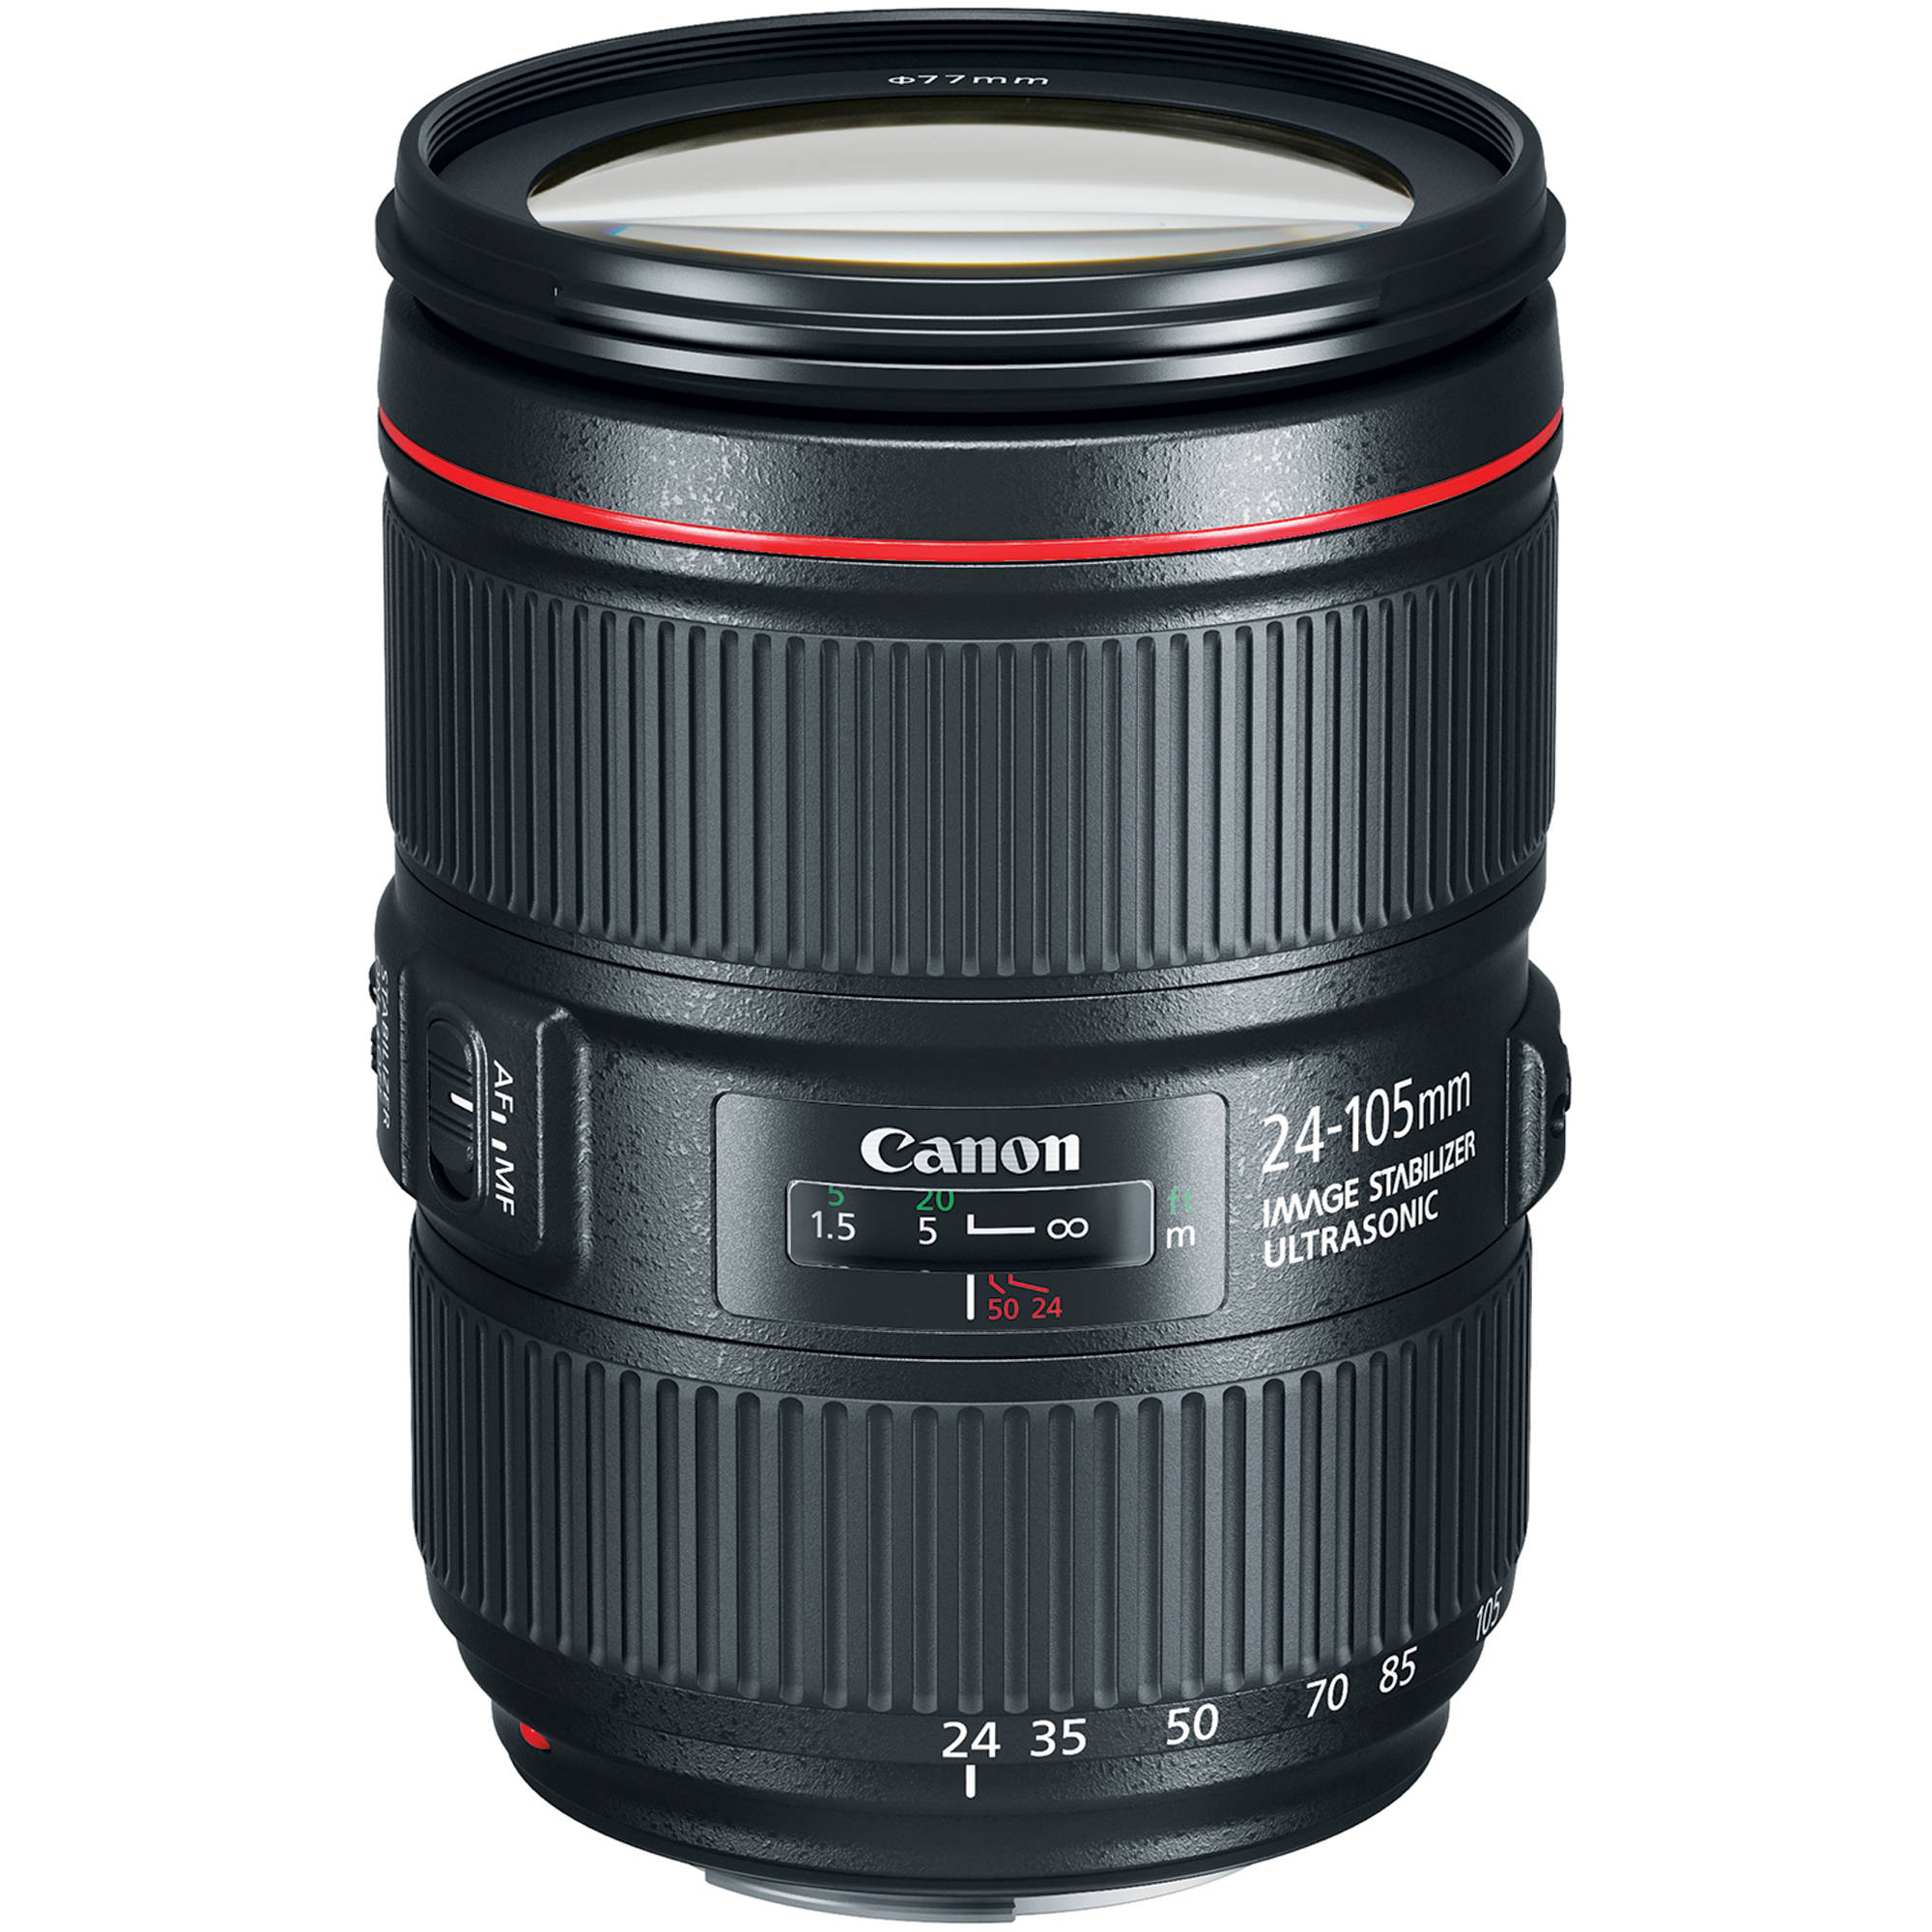 canon ef 24 105mm f 4l is ii usm lens 1380c002 b h photo video rh bhphotovideo com canon 24 105 lens user manual Canon 24 105 Craigslist